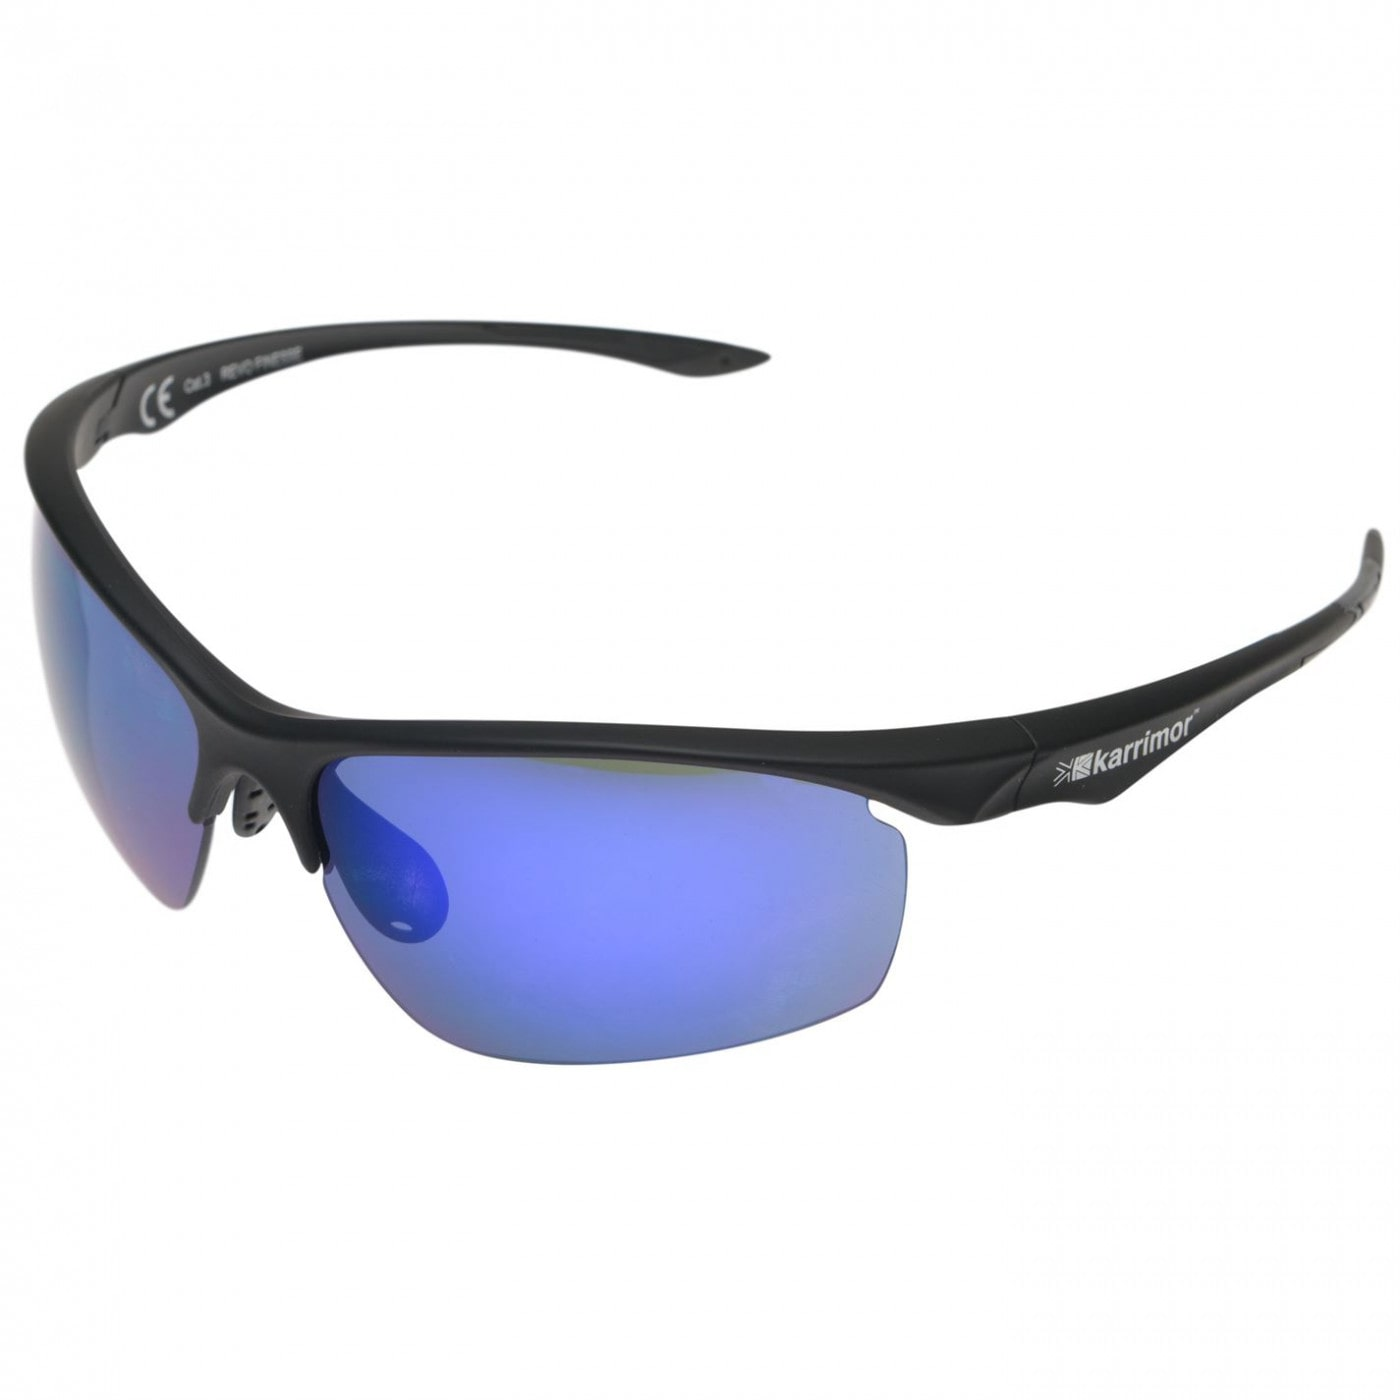 Karrimor Revo Sunglasses Mens